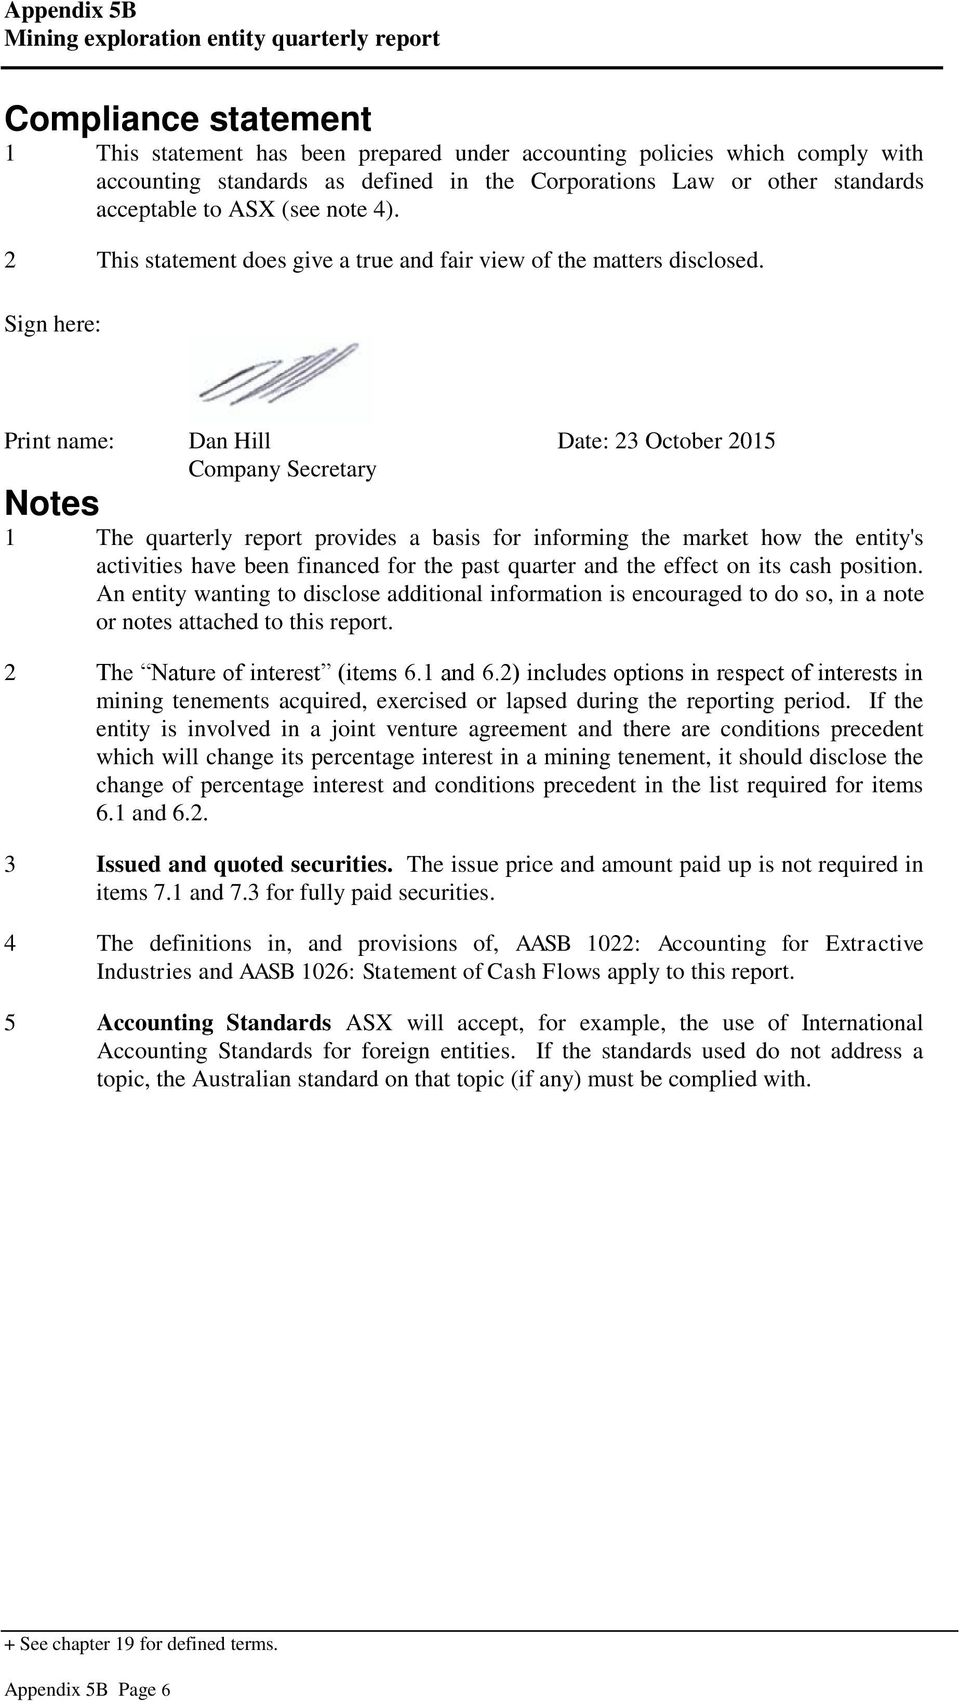 Sign here: Print name: Dan Hill Date: 23 October 215 Company Secretary Notes 1 The quarterly report provides a basis for informing the market how the entity's activities have been financed for the